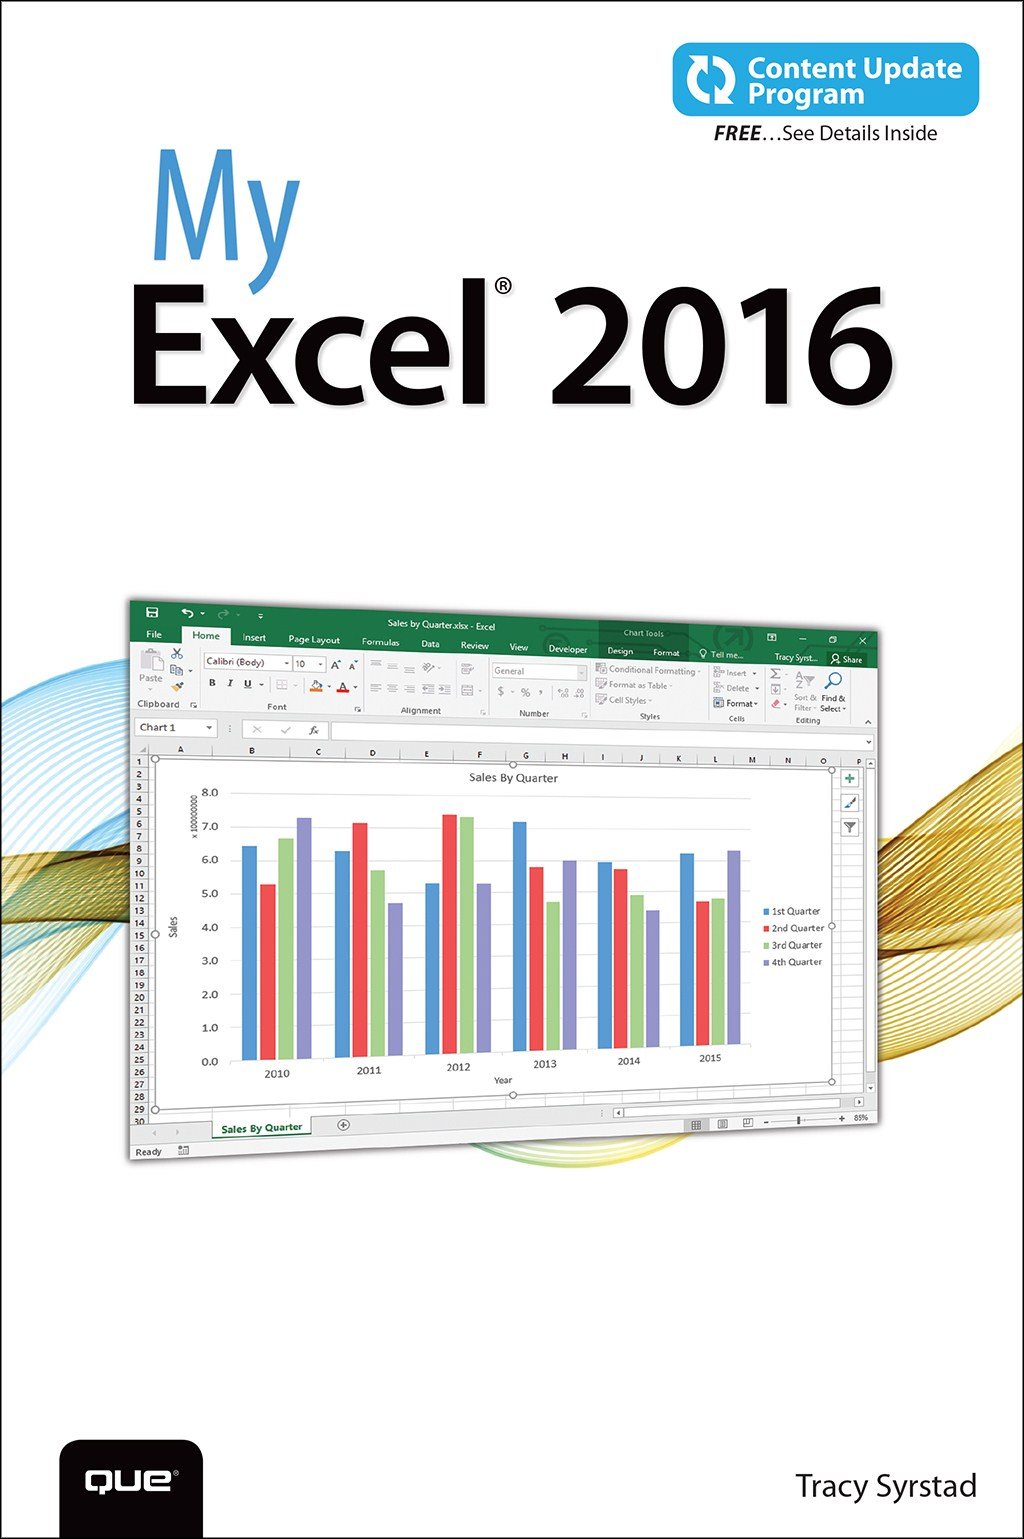 My Excel 2016 (includes Content Update Program)